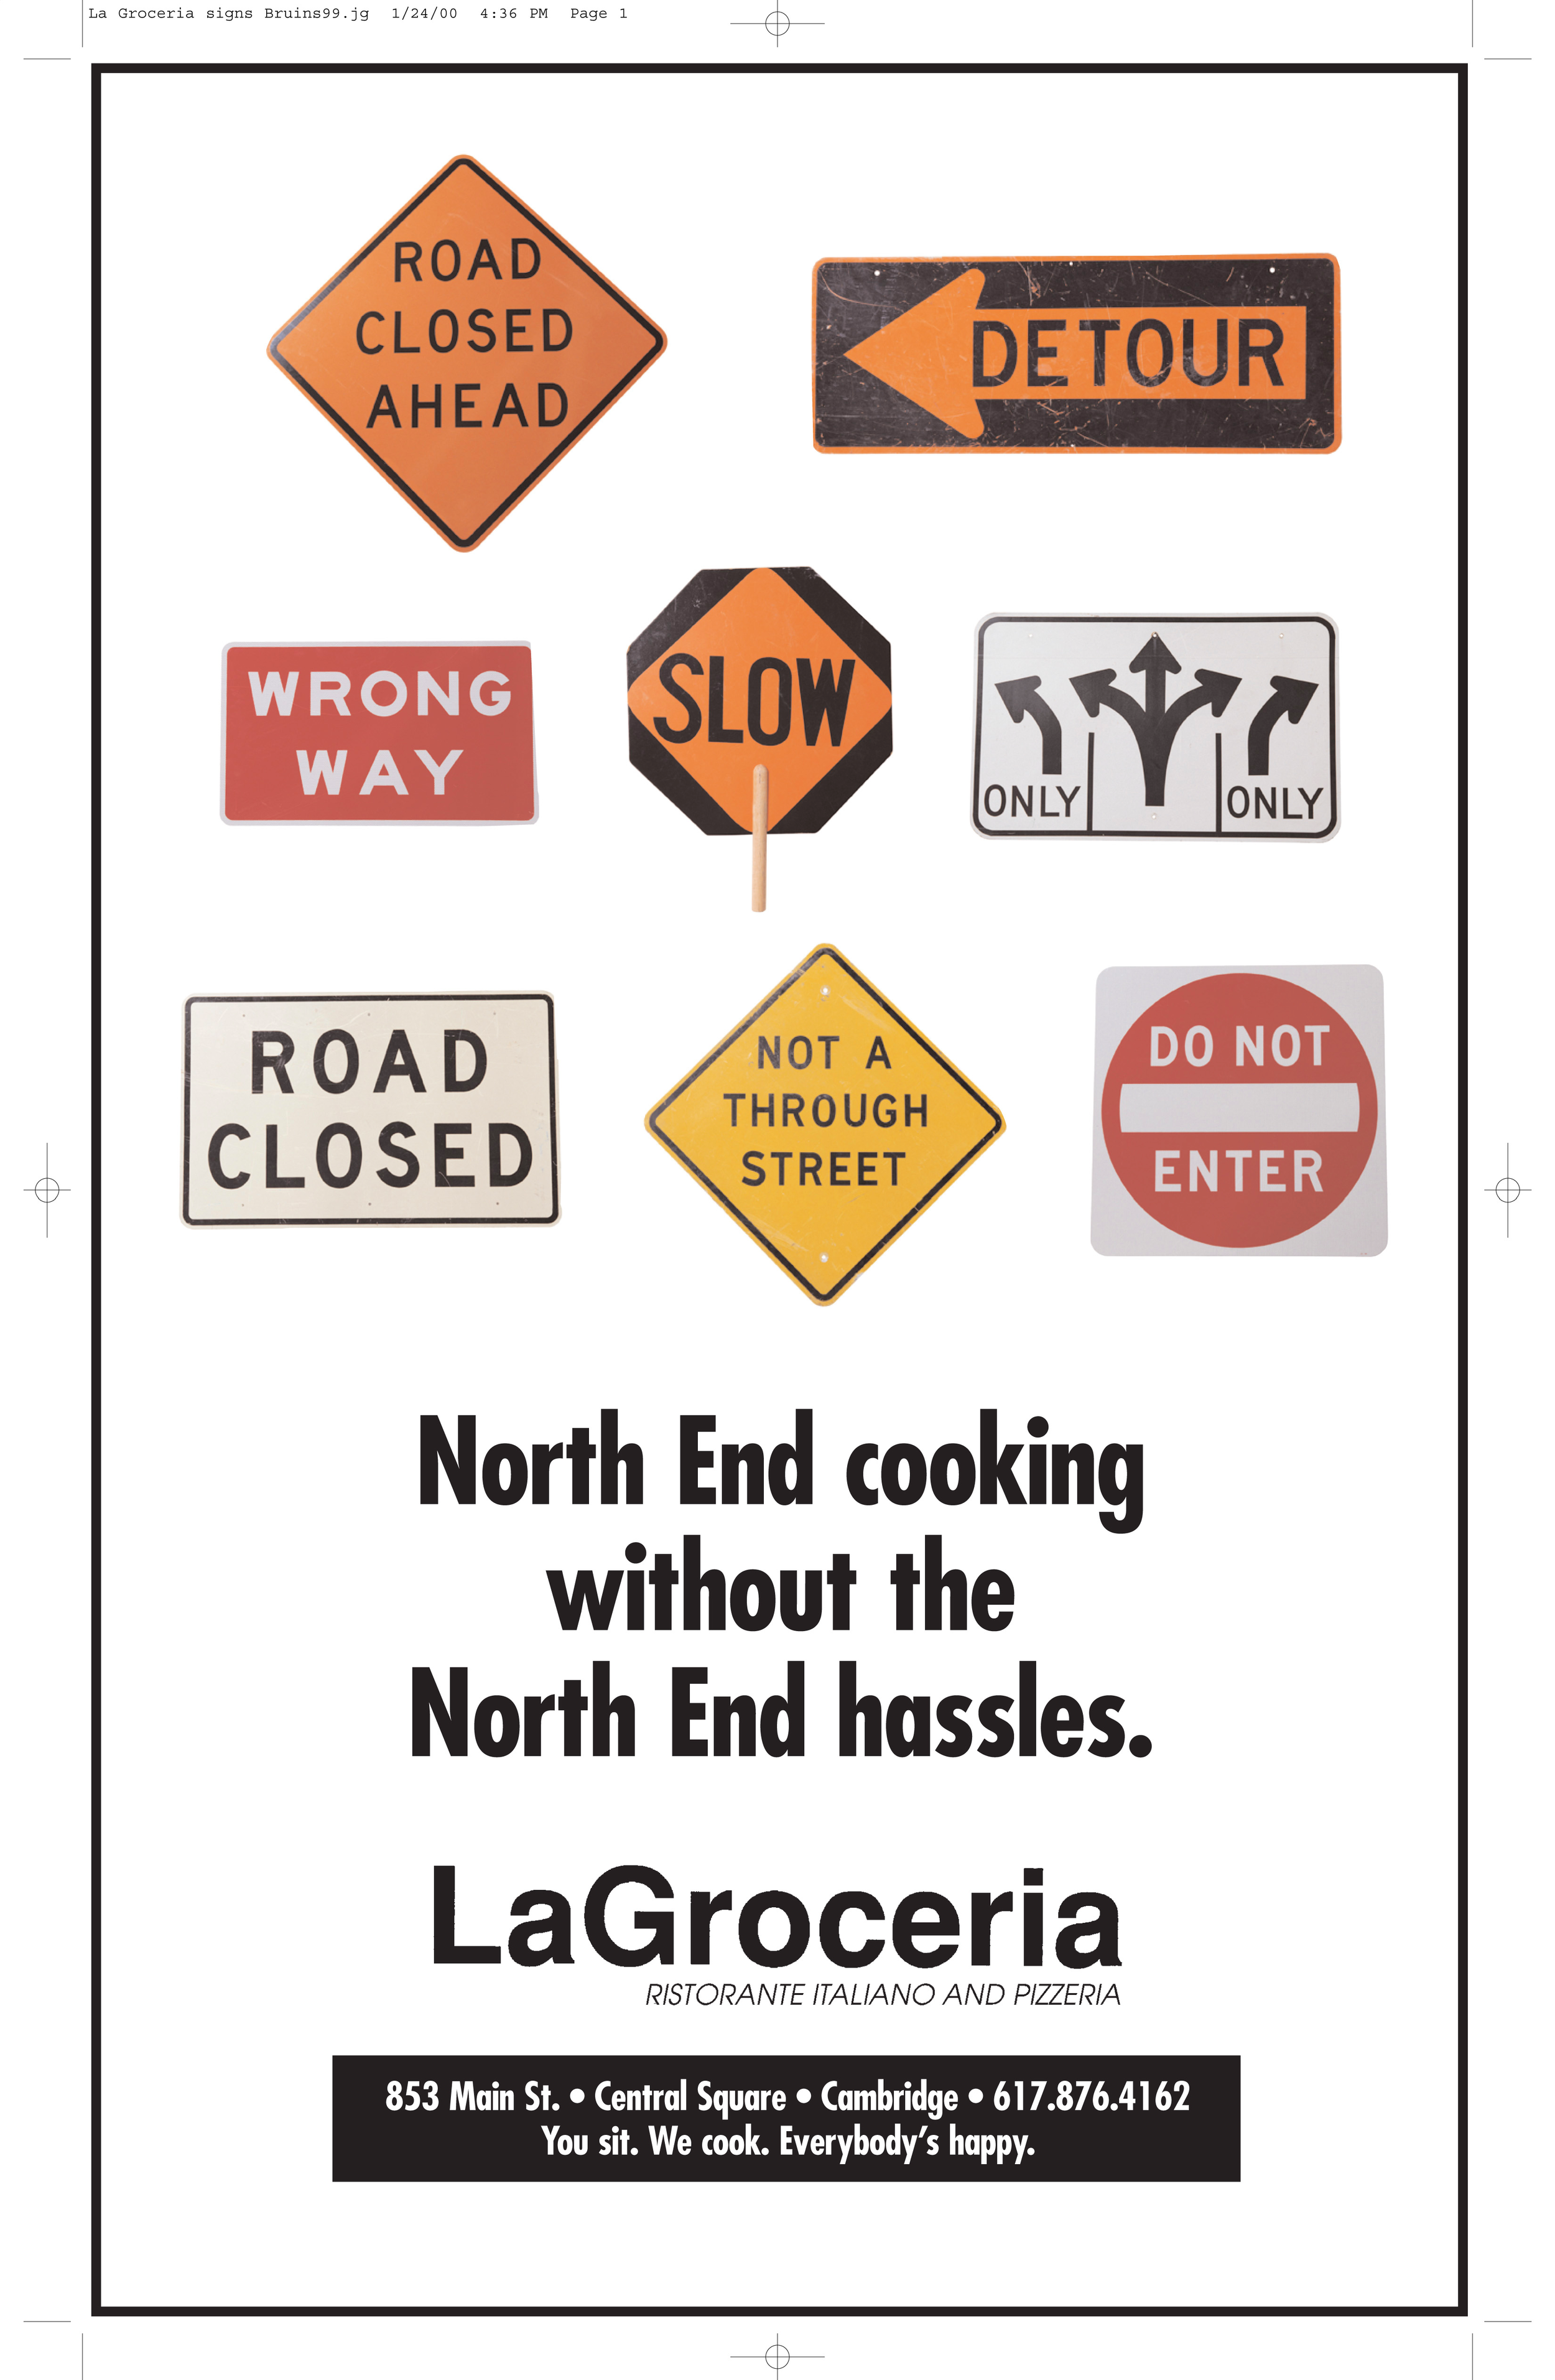 lagroceriasigns6x16.png